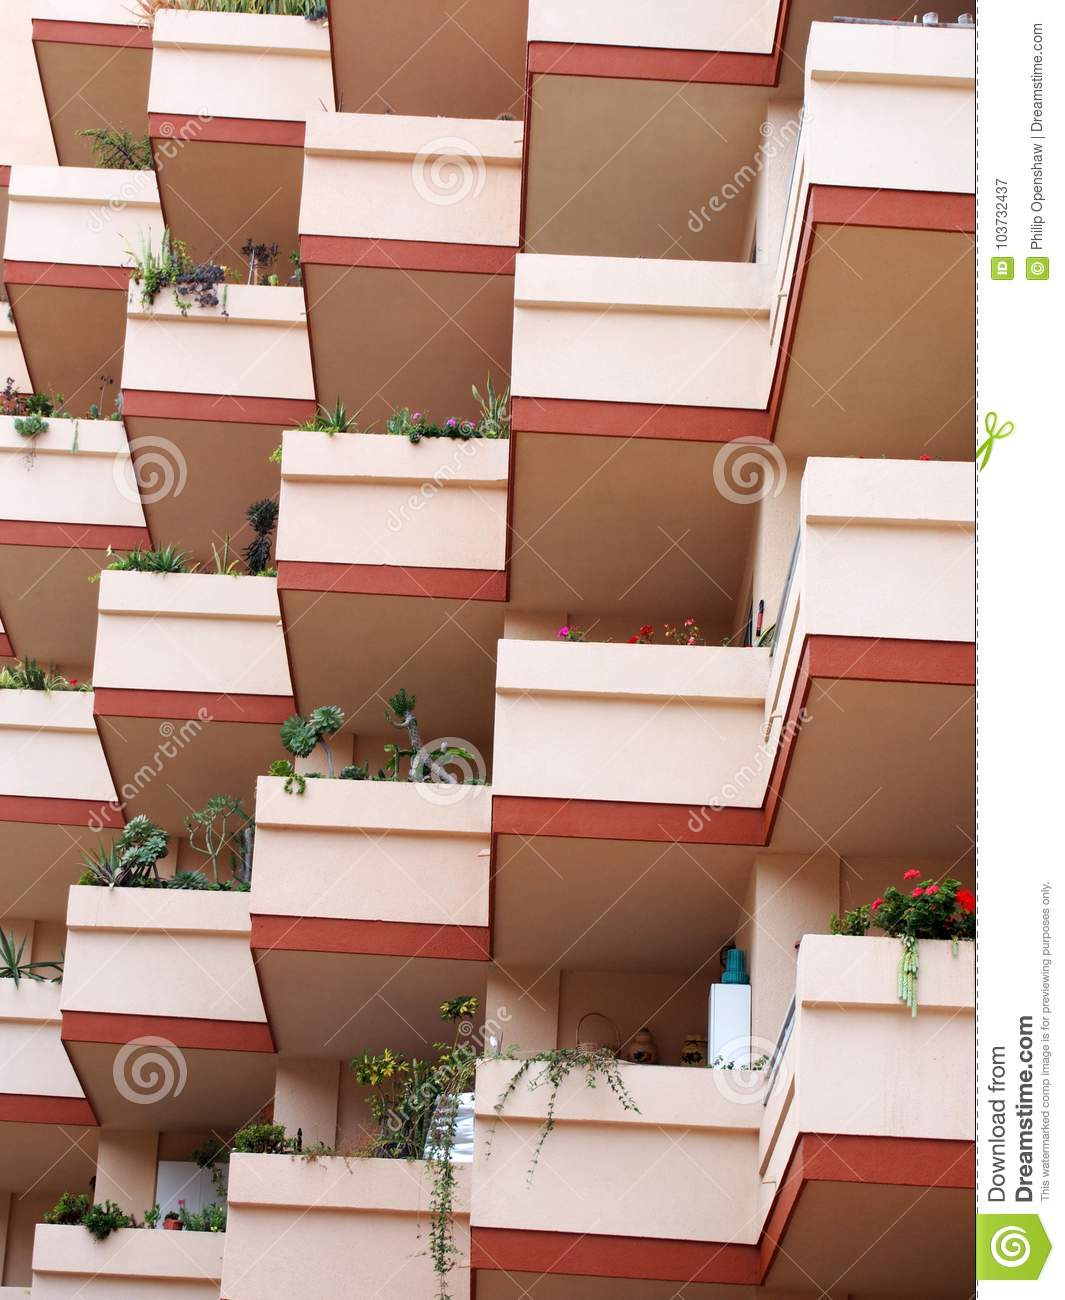 apartment balcony plants Modern Concrete Pink Apartment Blocks With Balconies And